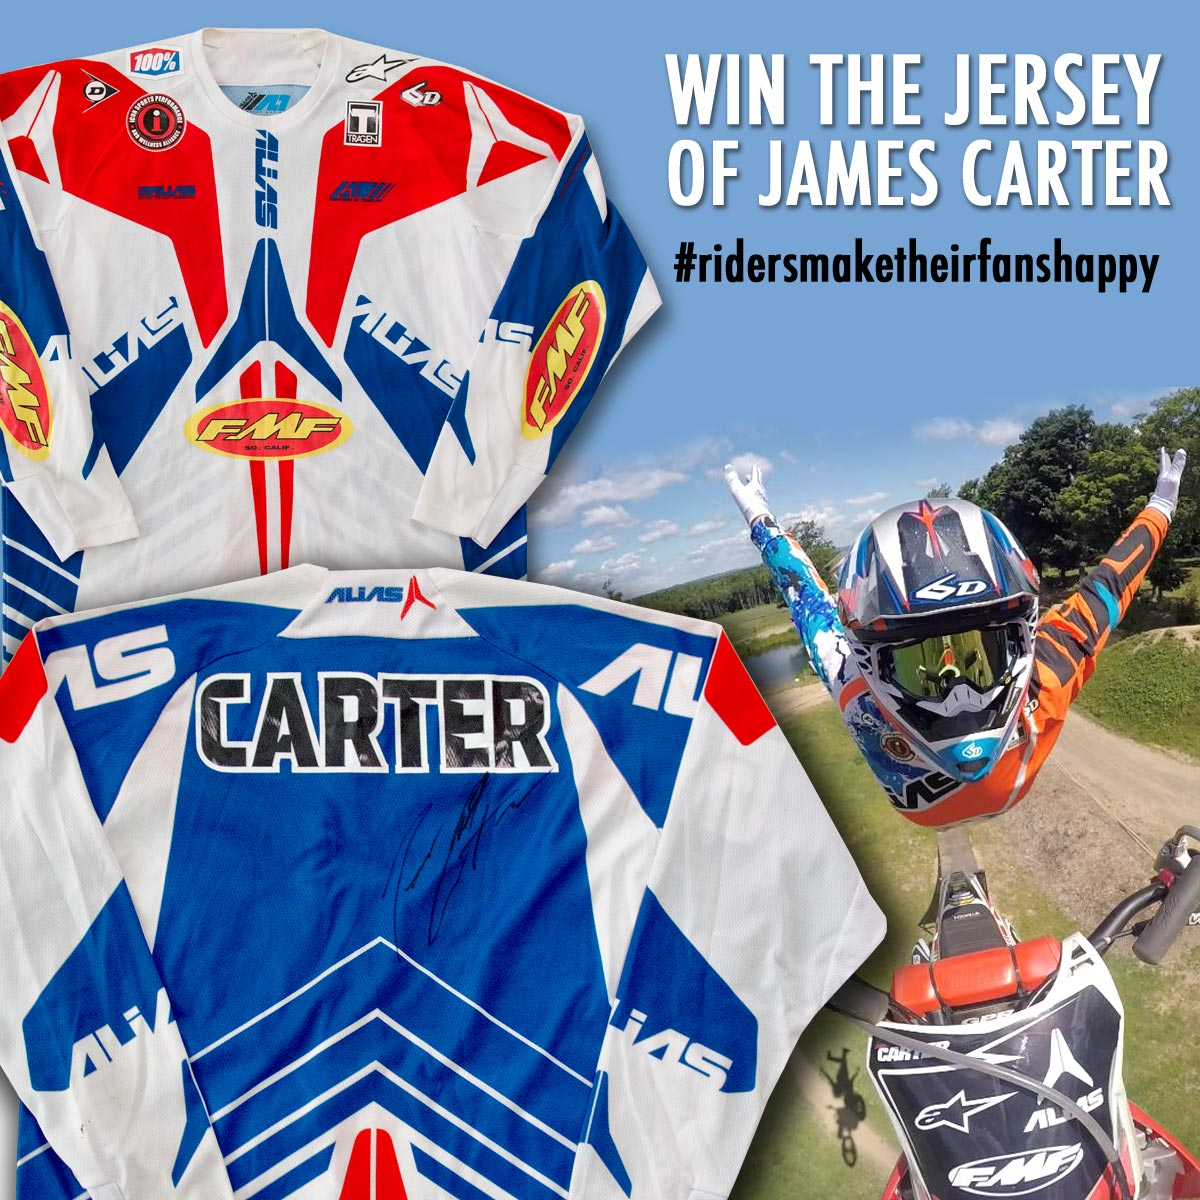 click here to view a large image of James Carters Gear